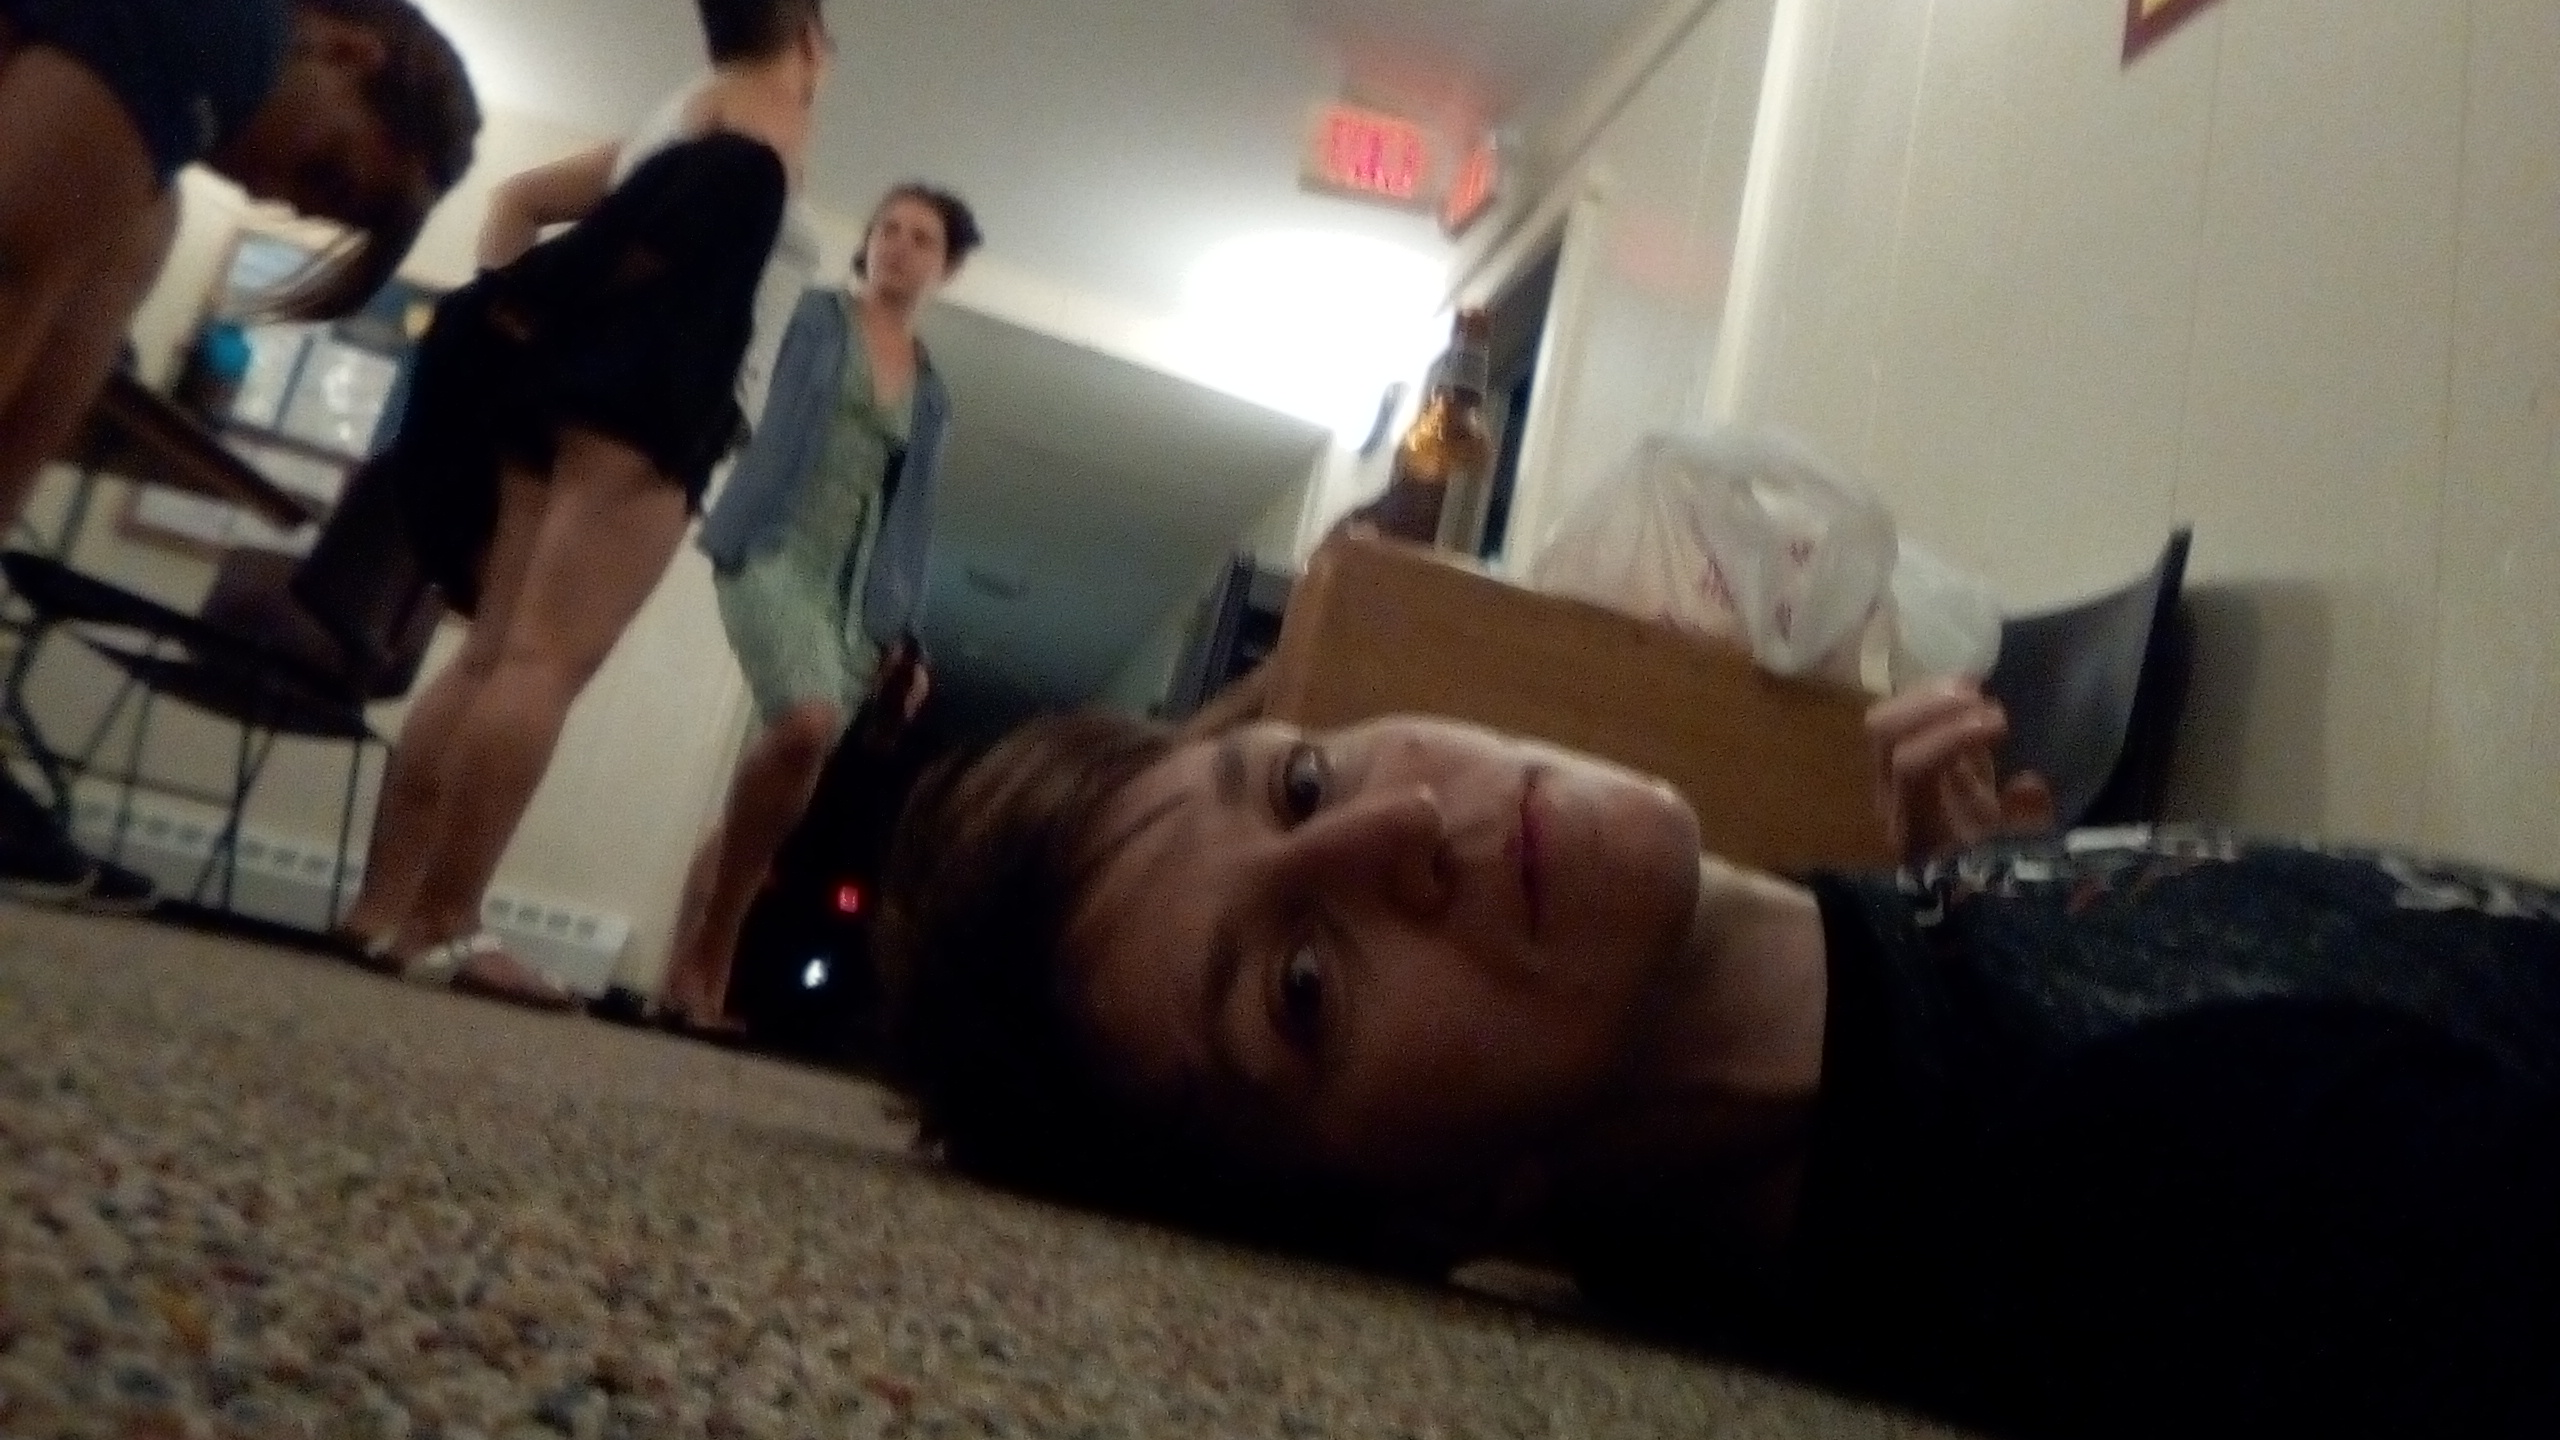 Asher lying on the floor of the dorms at the workshop with other students in the background.